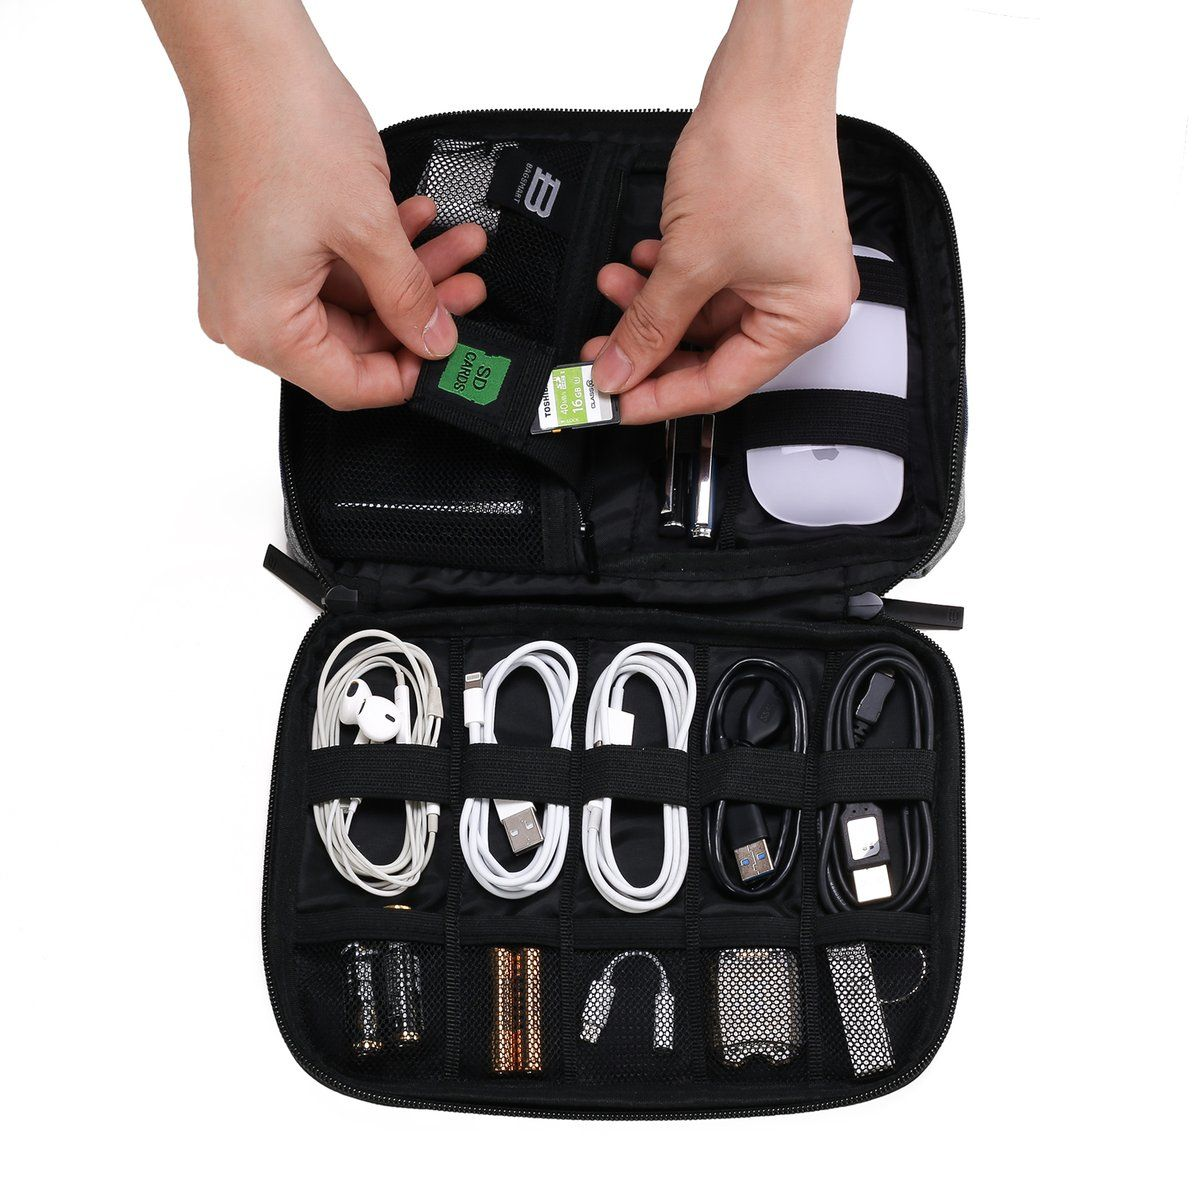 12dca1a41 Small Travel Electronics Cable Organizer Bag for Hard Drives